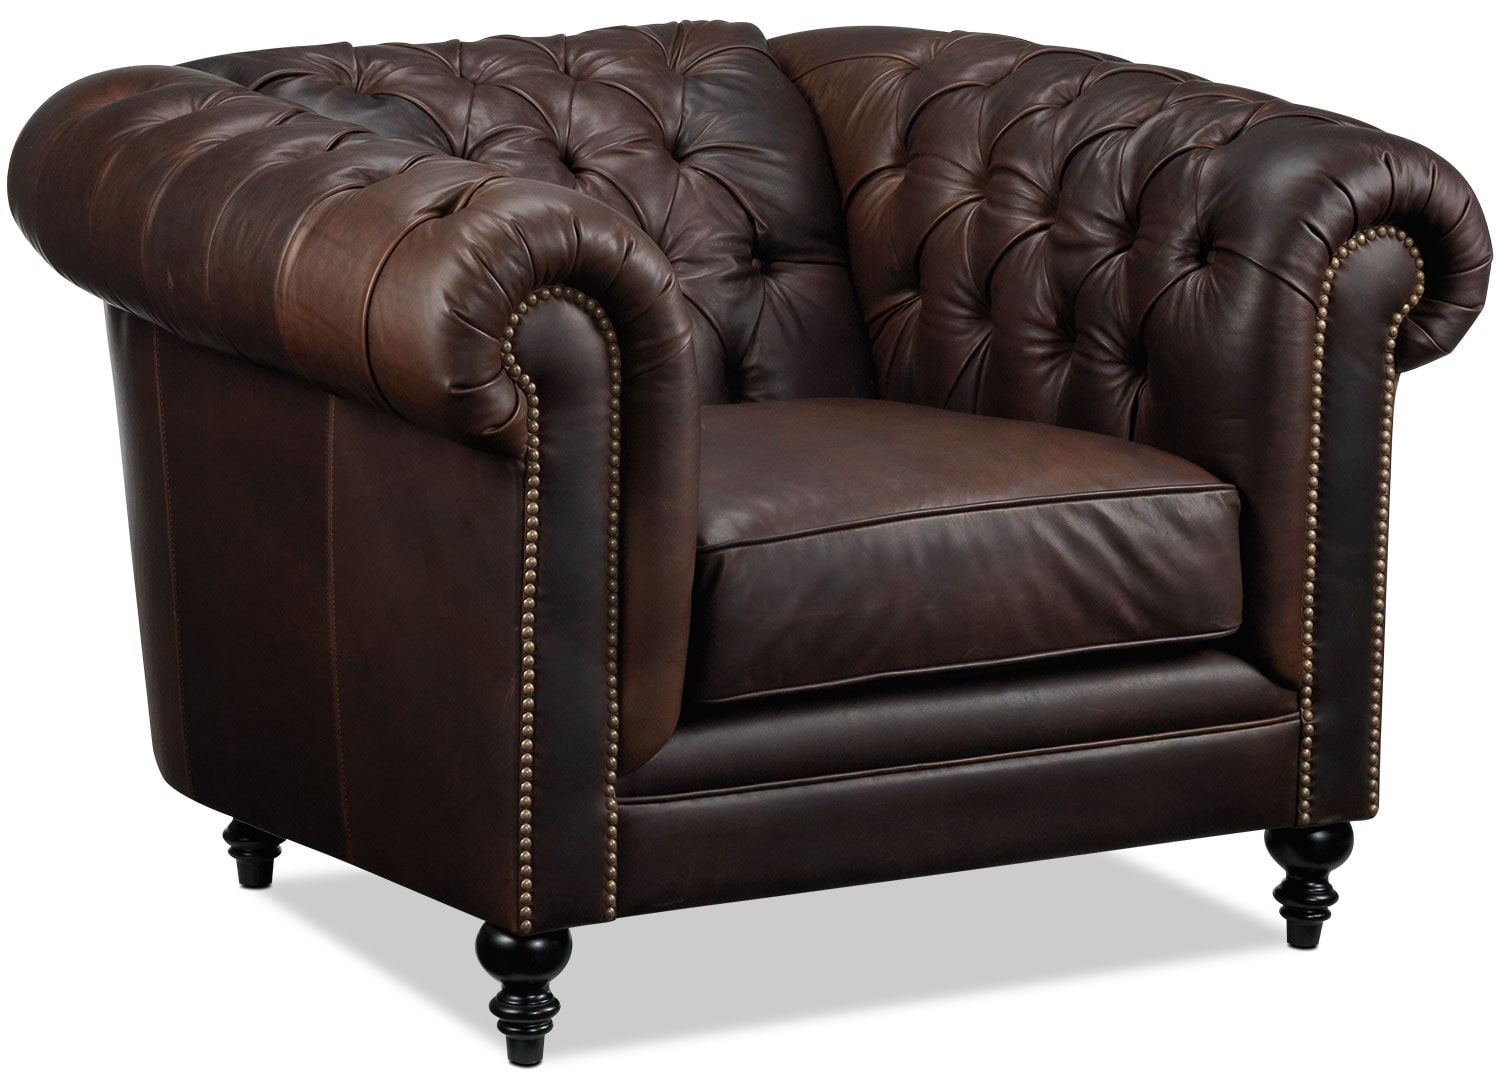 Living Room Furniture - Charleston Chair - Brown